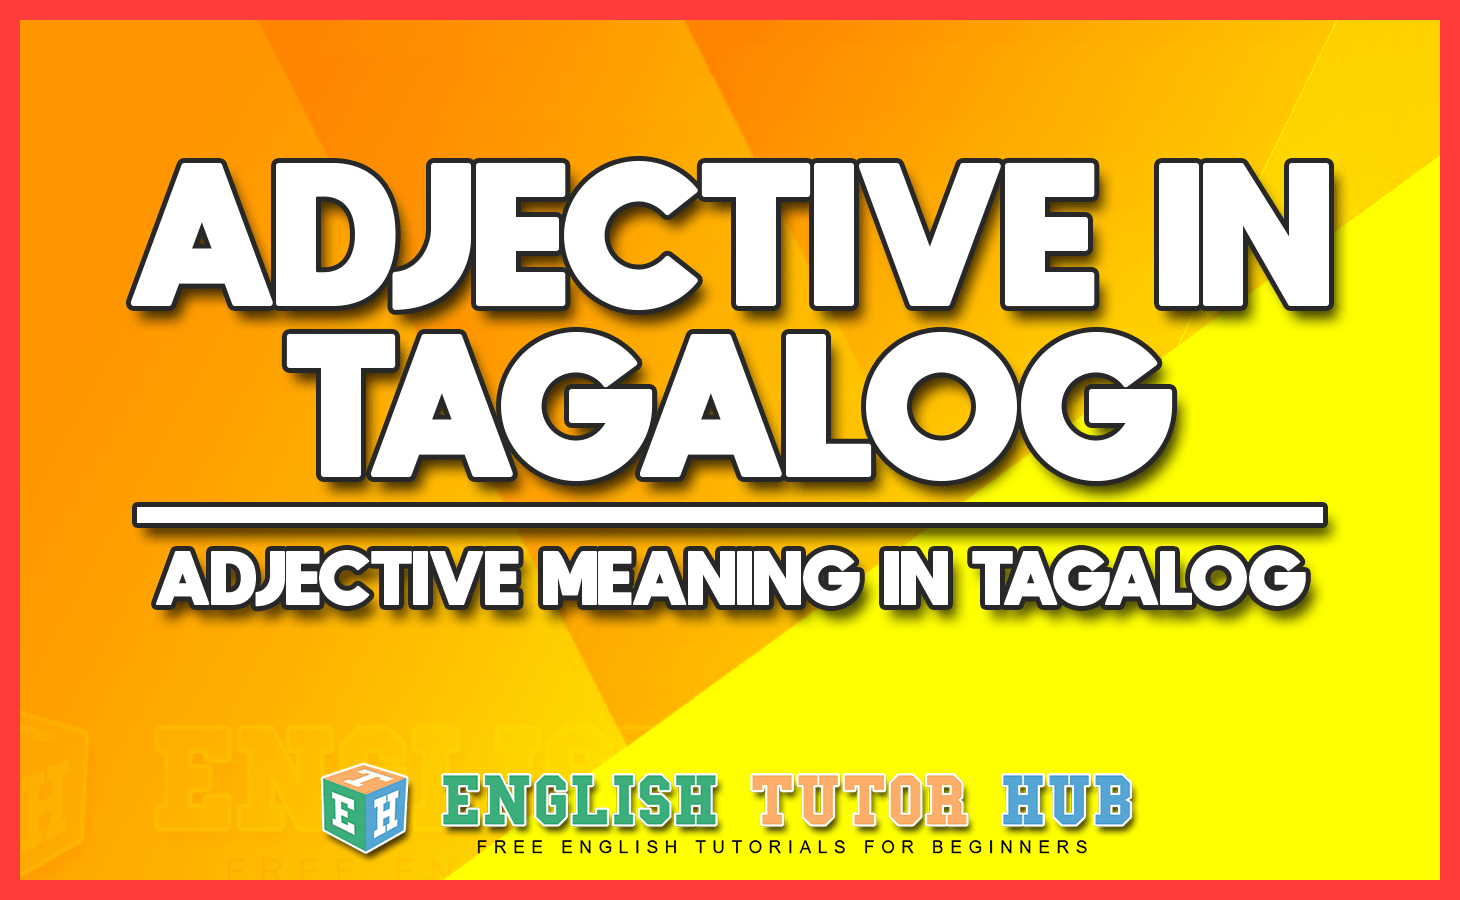 Adjective in Tagalog - Adjective Meaning in Tagalog